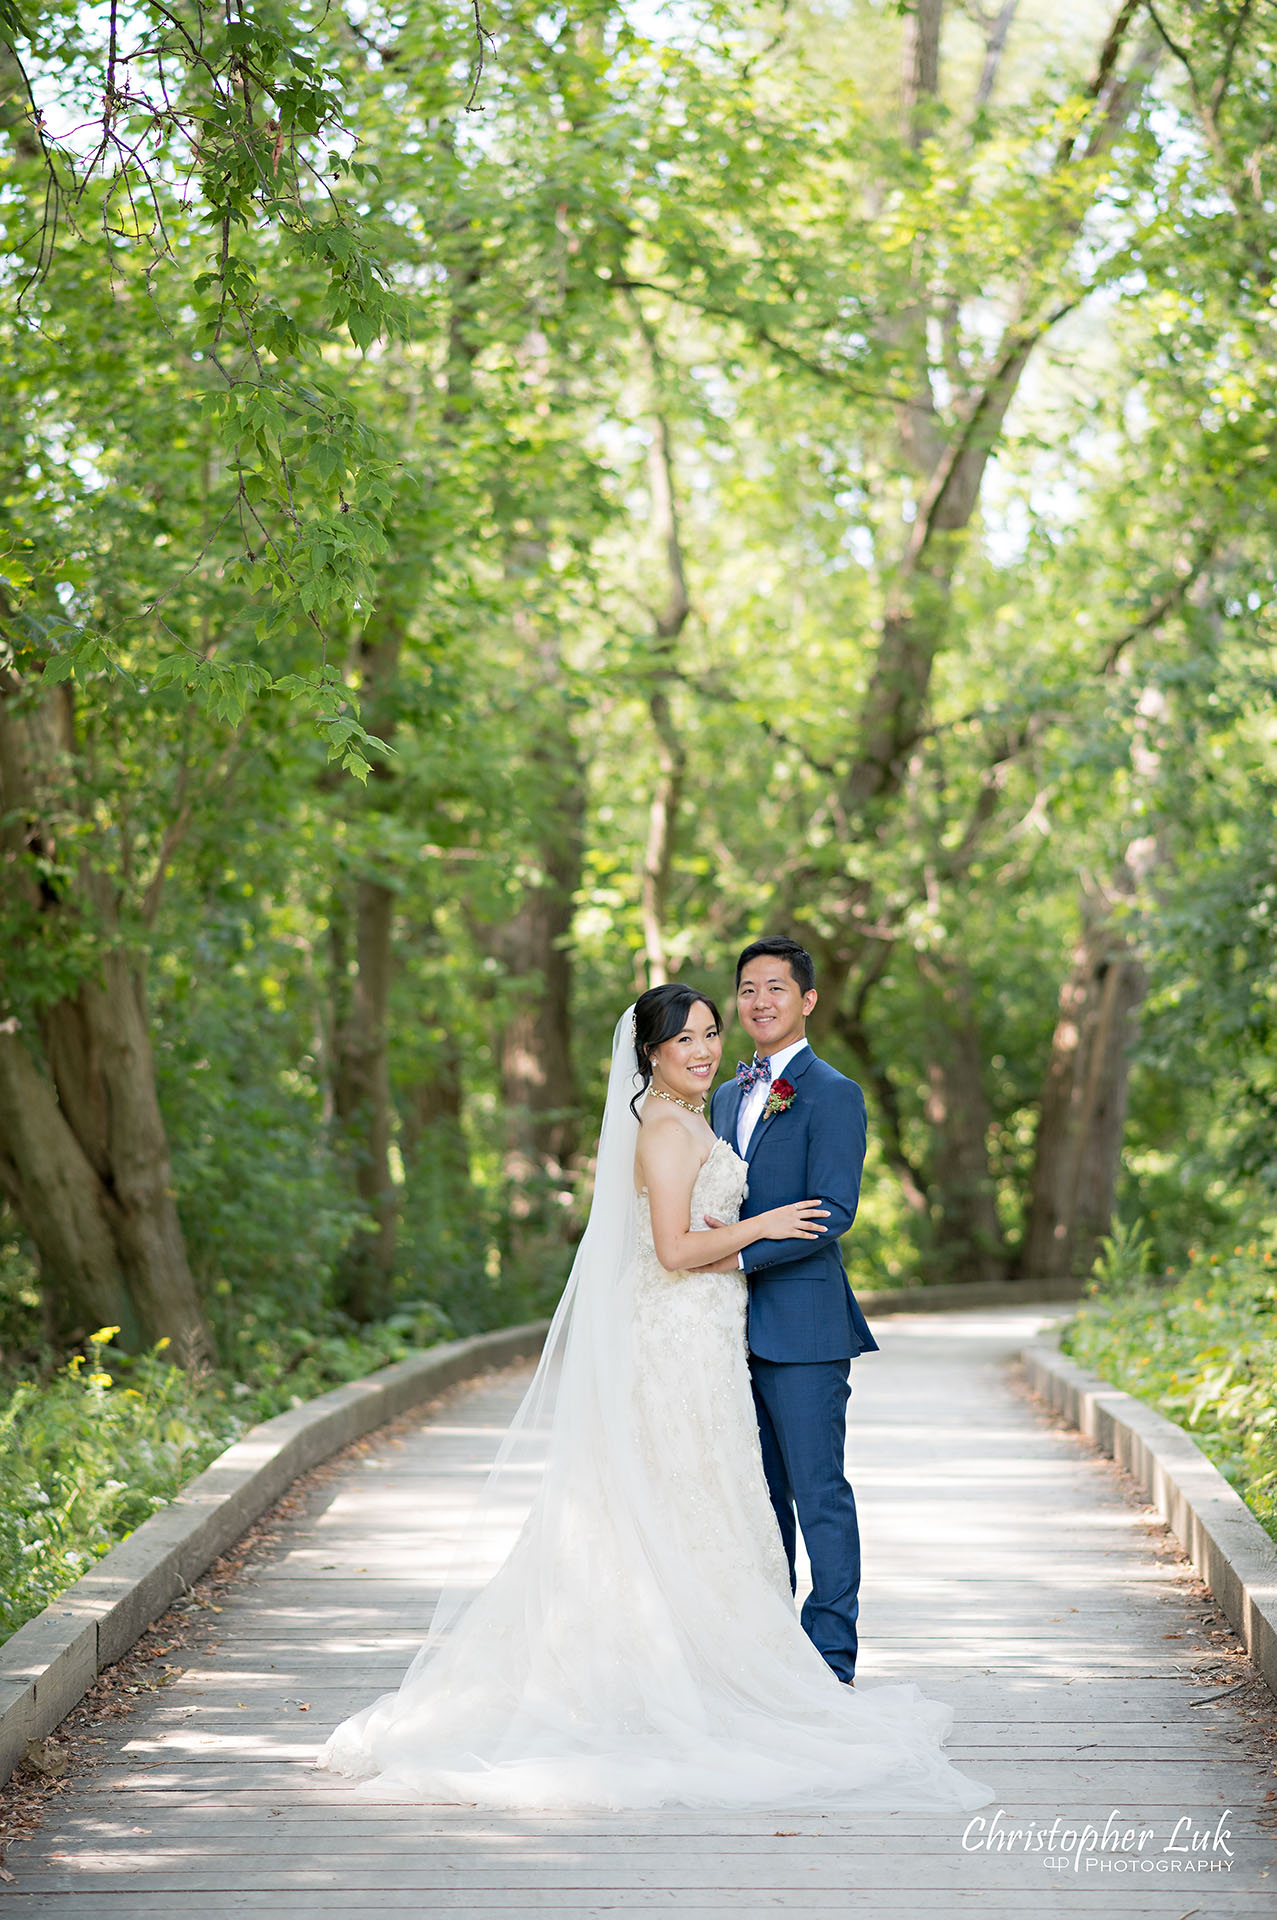 Christopher Luk Toronto Wedding Photographer Bridle Trail Baptist Church Unionville Main Street Crystal Fountain Event Venue Bride Groom Natural Photojournalistic Candid Creative Portrait Session Pictures Forest Trail Walkway Boardwalk Hug Kiss Portrait